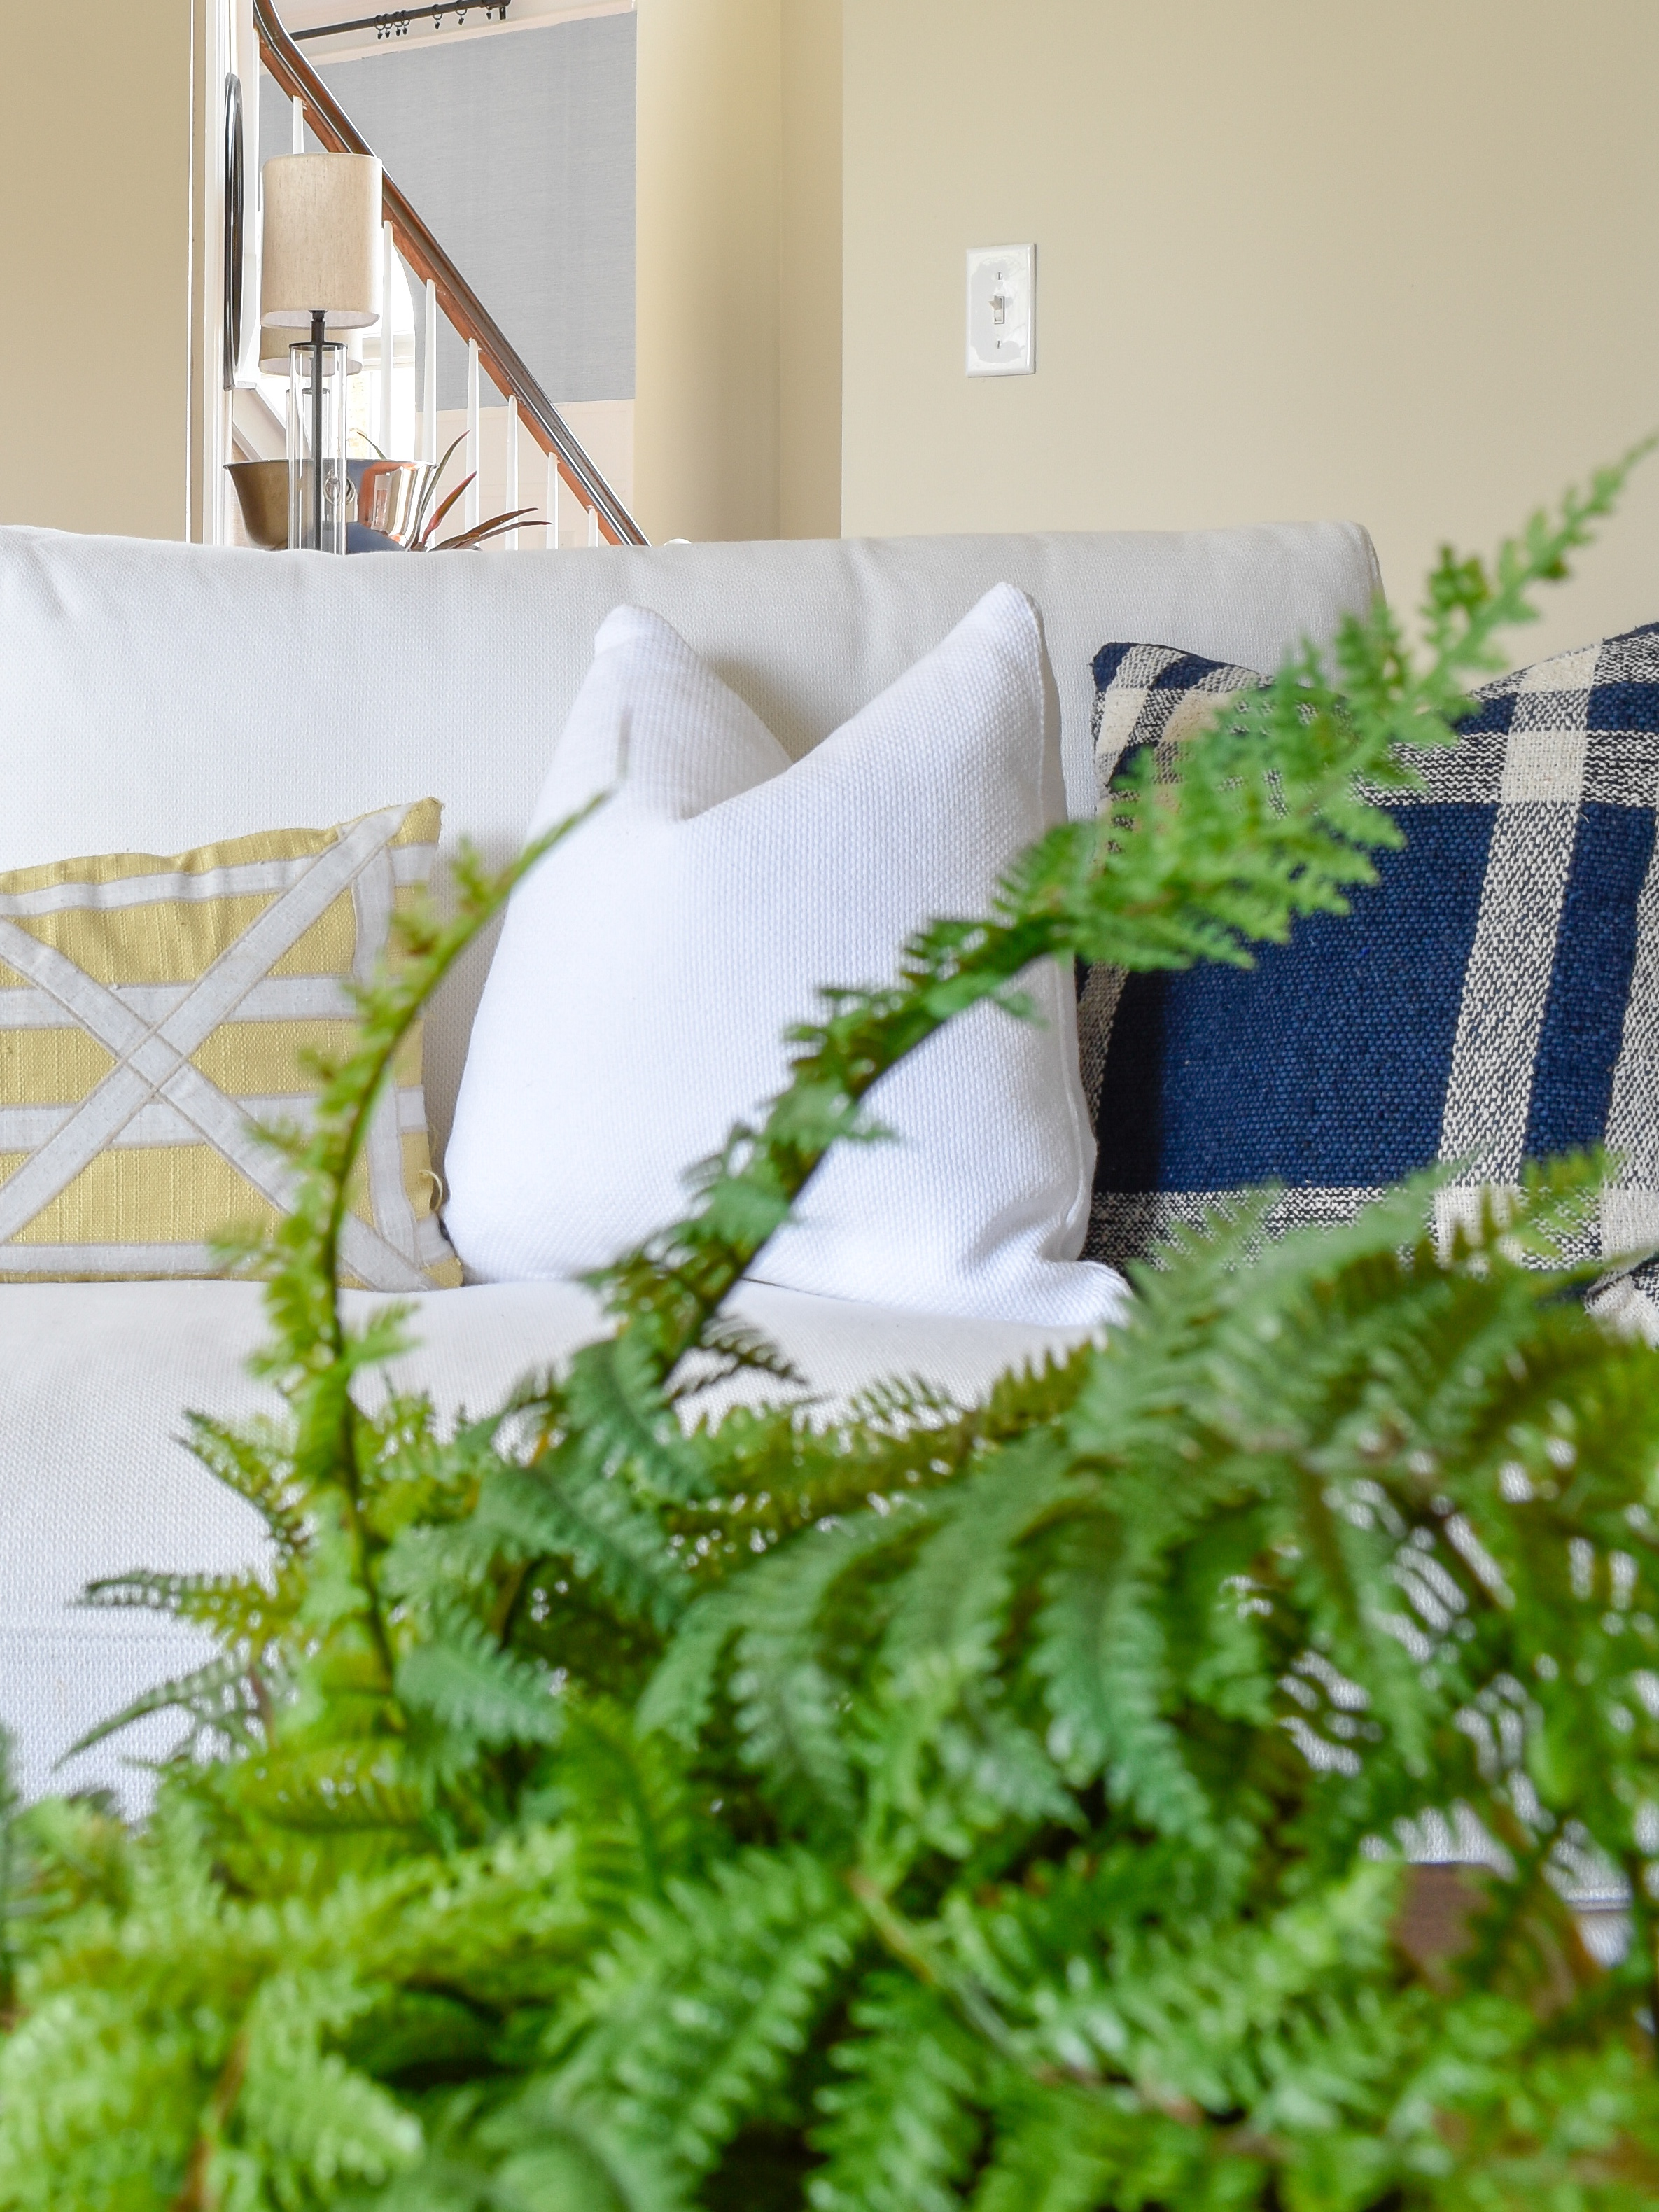 We've cleaned out the clutter and added back only one simple seasonal item that makes our home feel like Spring has sprung!  #springdecor #springlivingroom